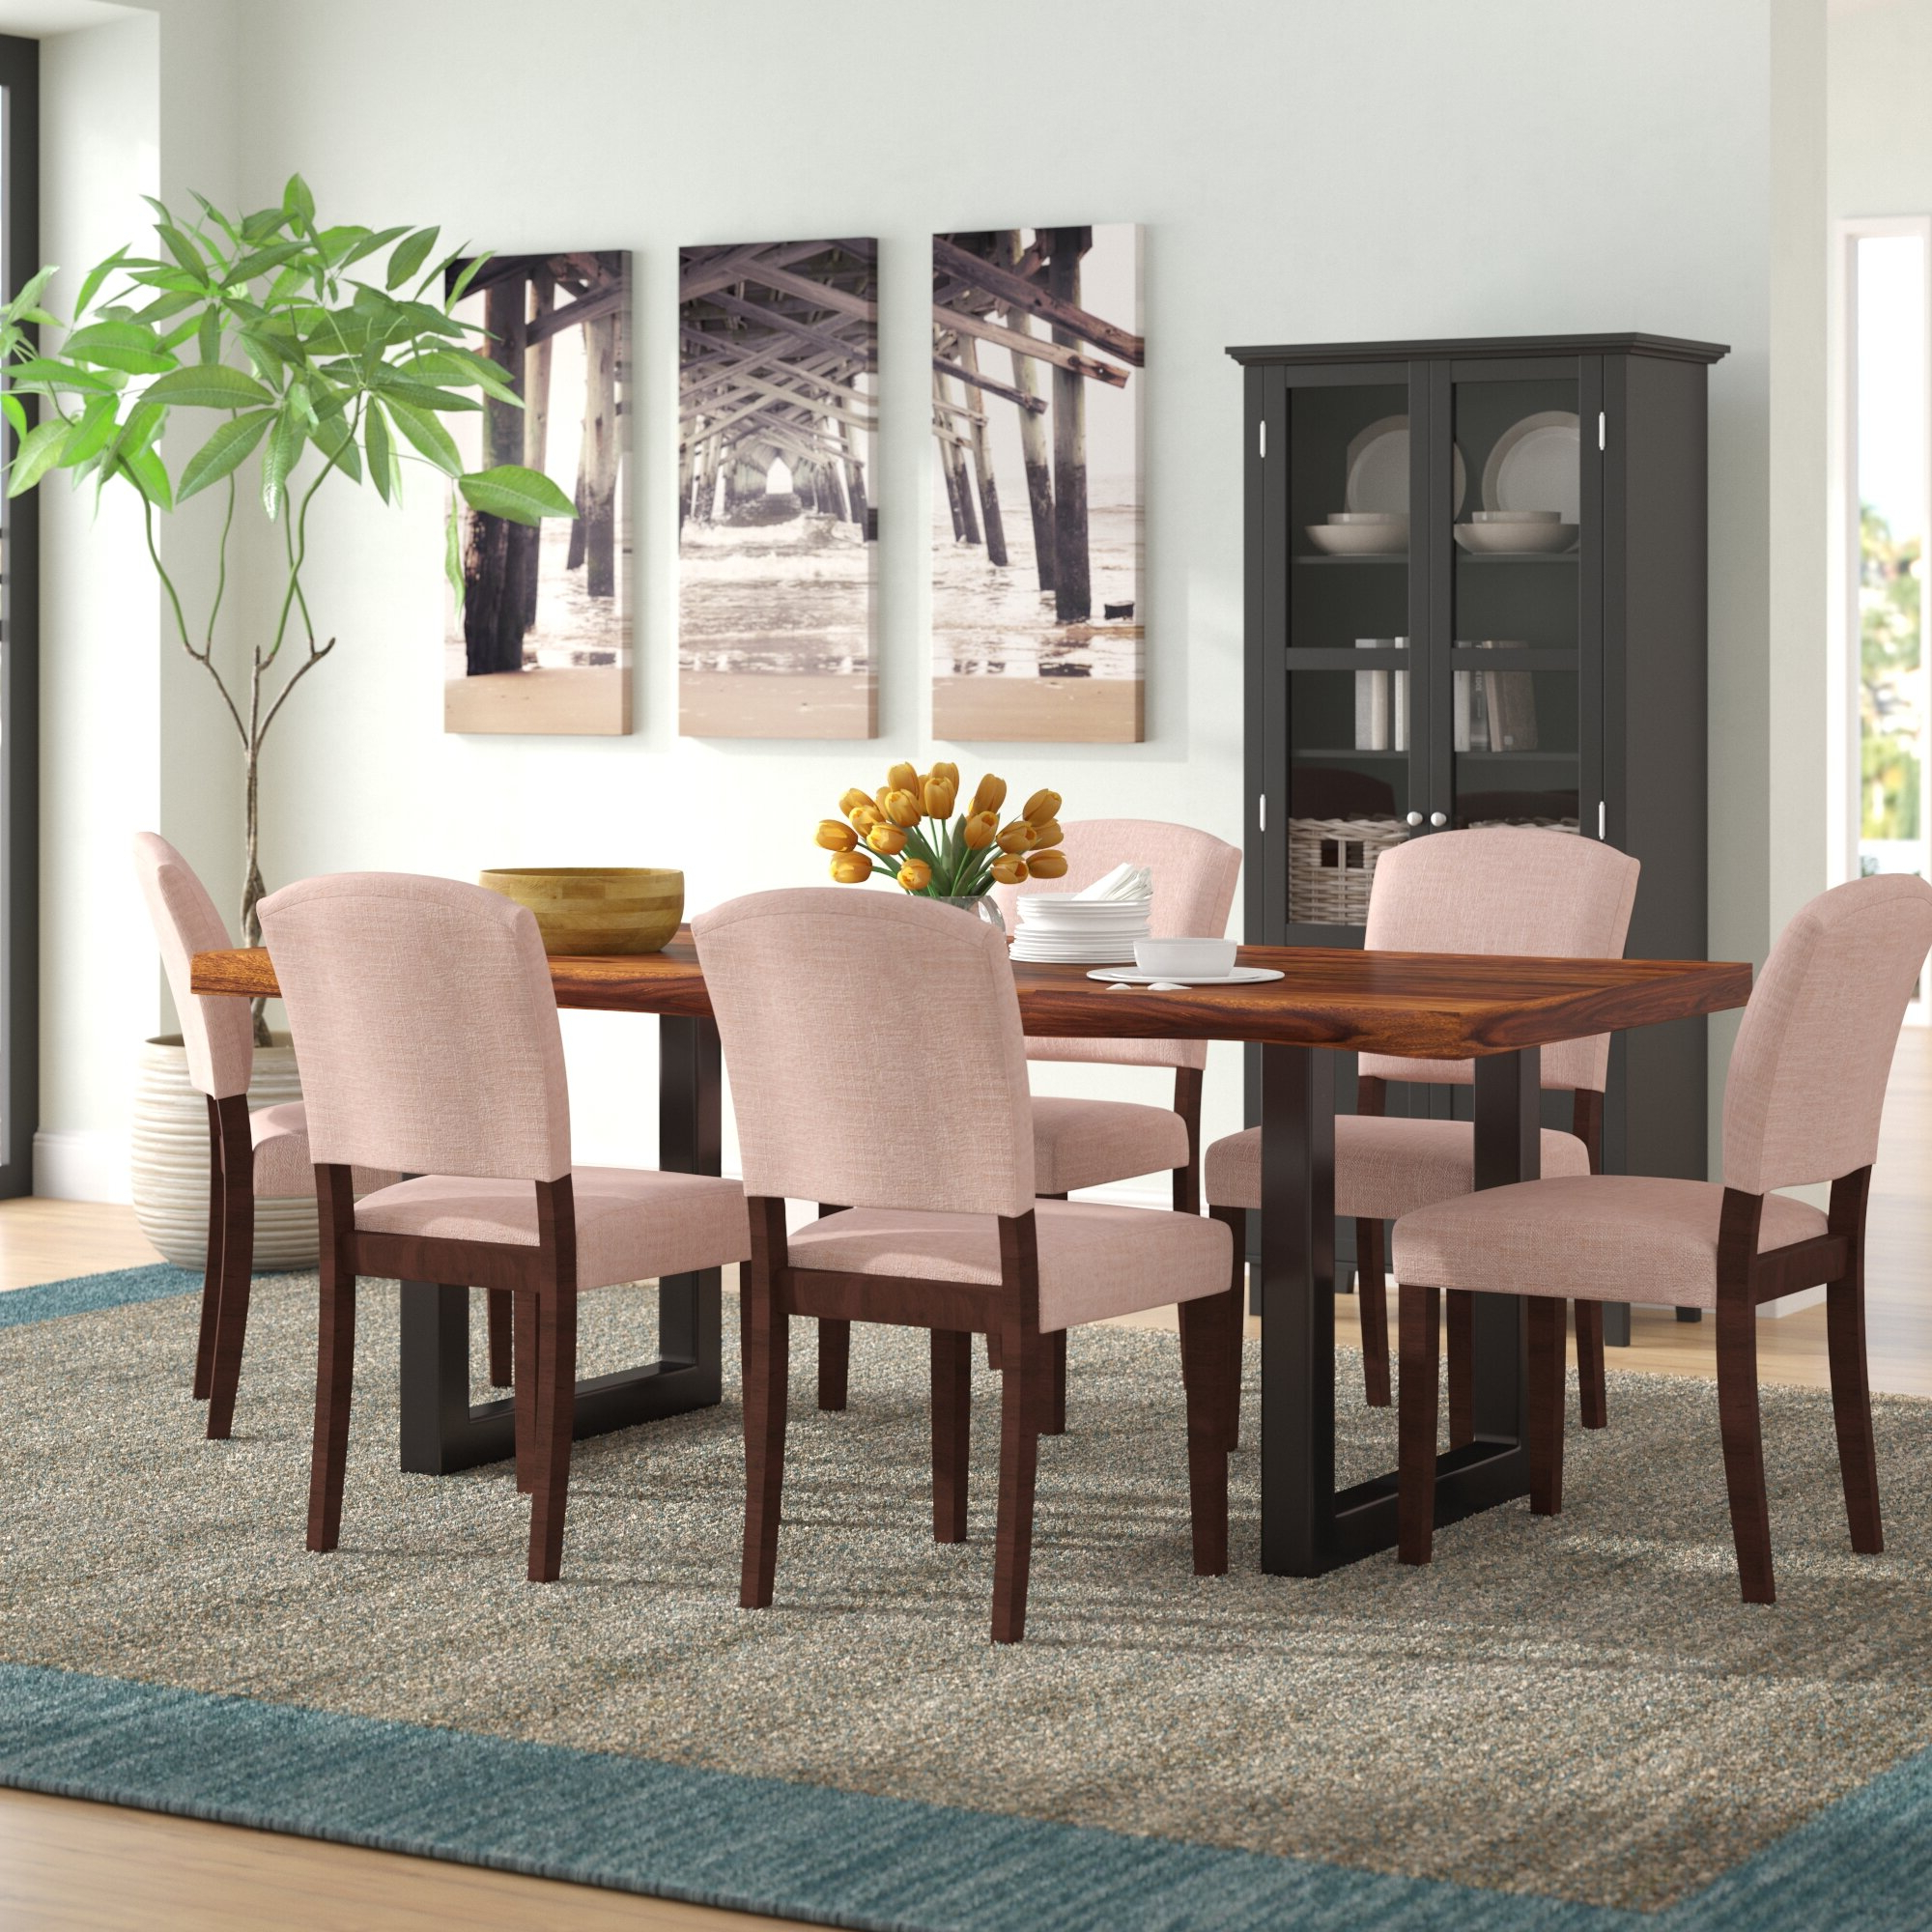 Evellen 5 Piece Solid Wood Dining Sets (Set Of 5) With Regard To 2018 Linde 7 Piece Dining Set (Gallery 1 of 20)